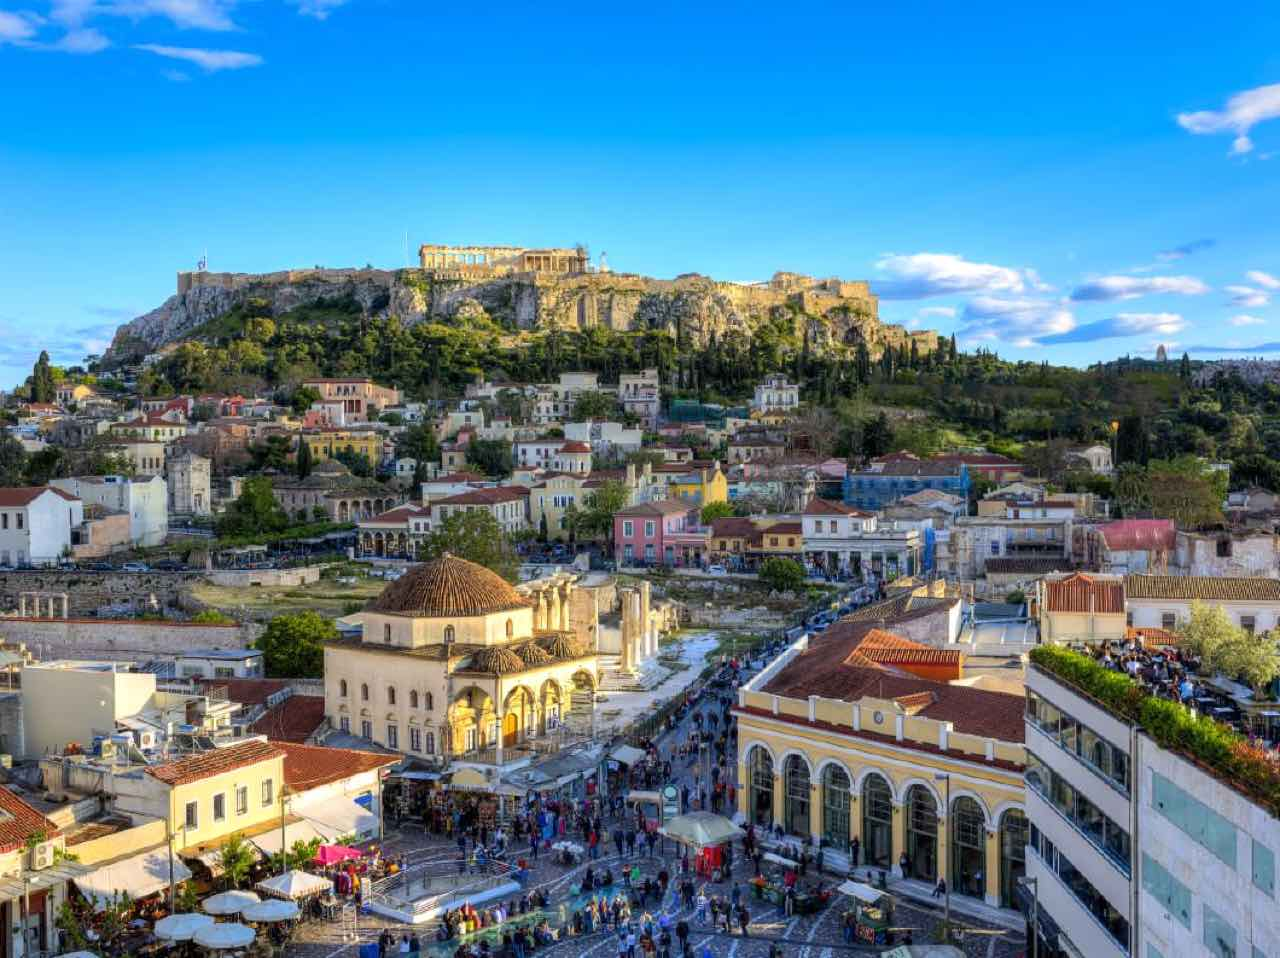 Three Airlines to Run Direct New York - Athens Flights